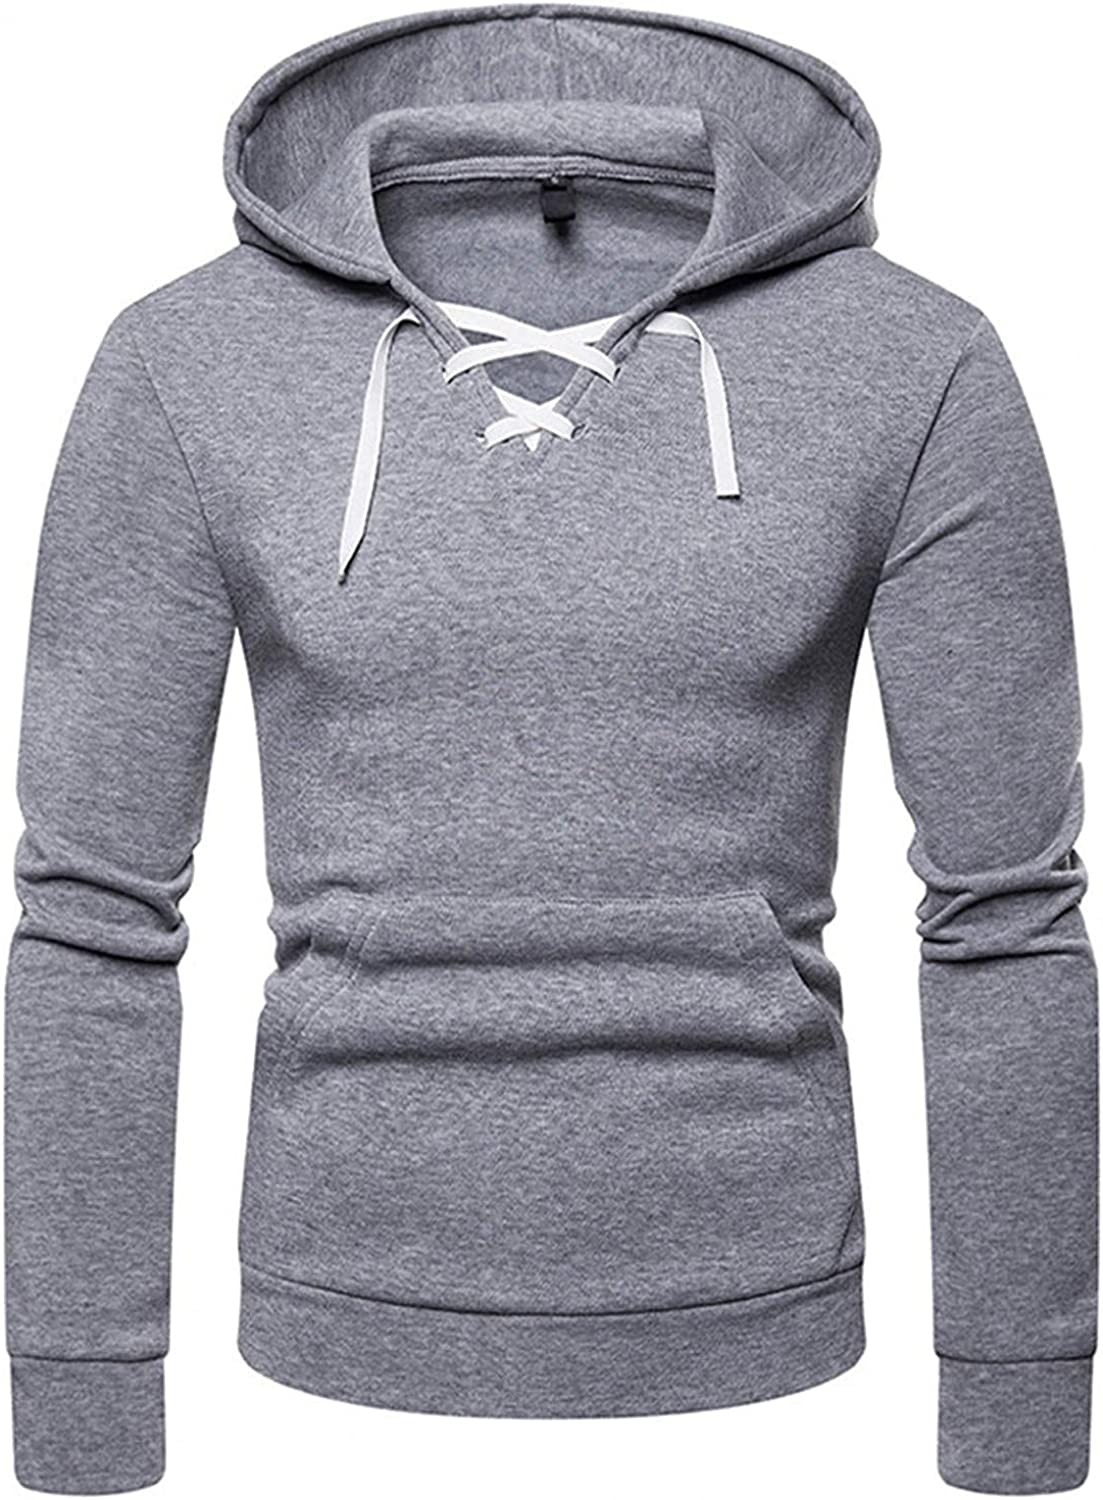 Huangse Men's Hoodie Button Down Hooded Sweatshirt Drawstring Hoodie Long Sleeve Athletic Tops Outdoor Workout Shirt for Mens